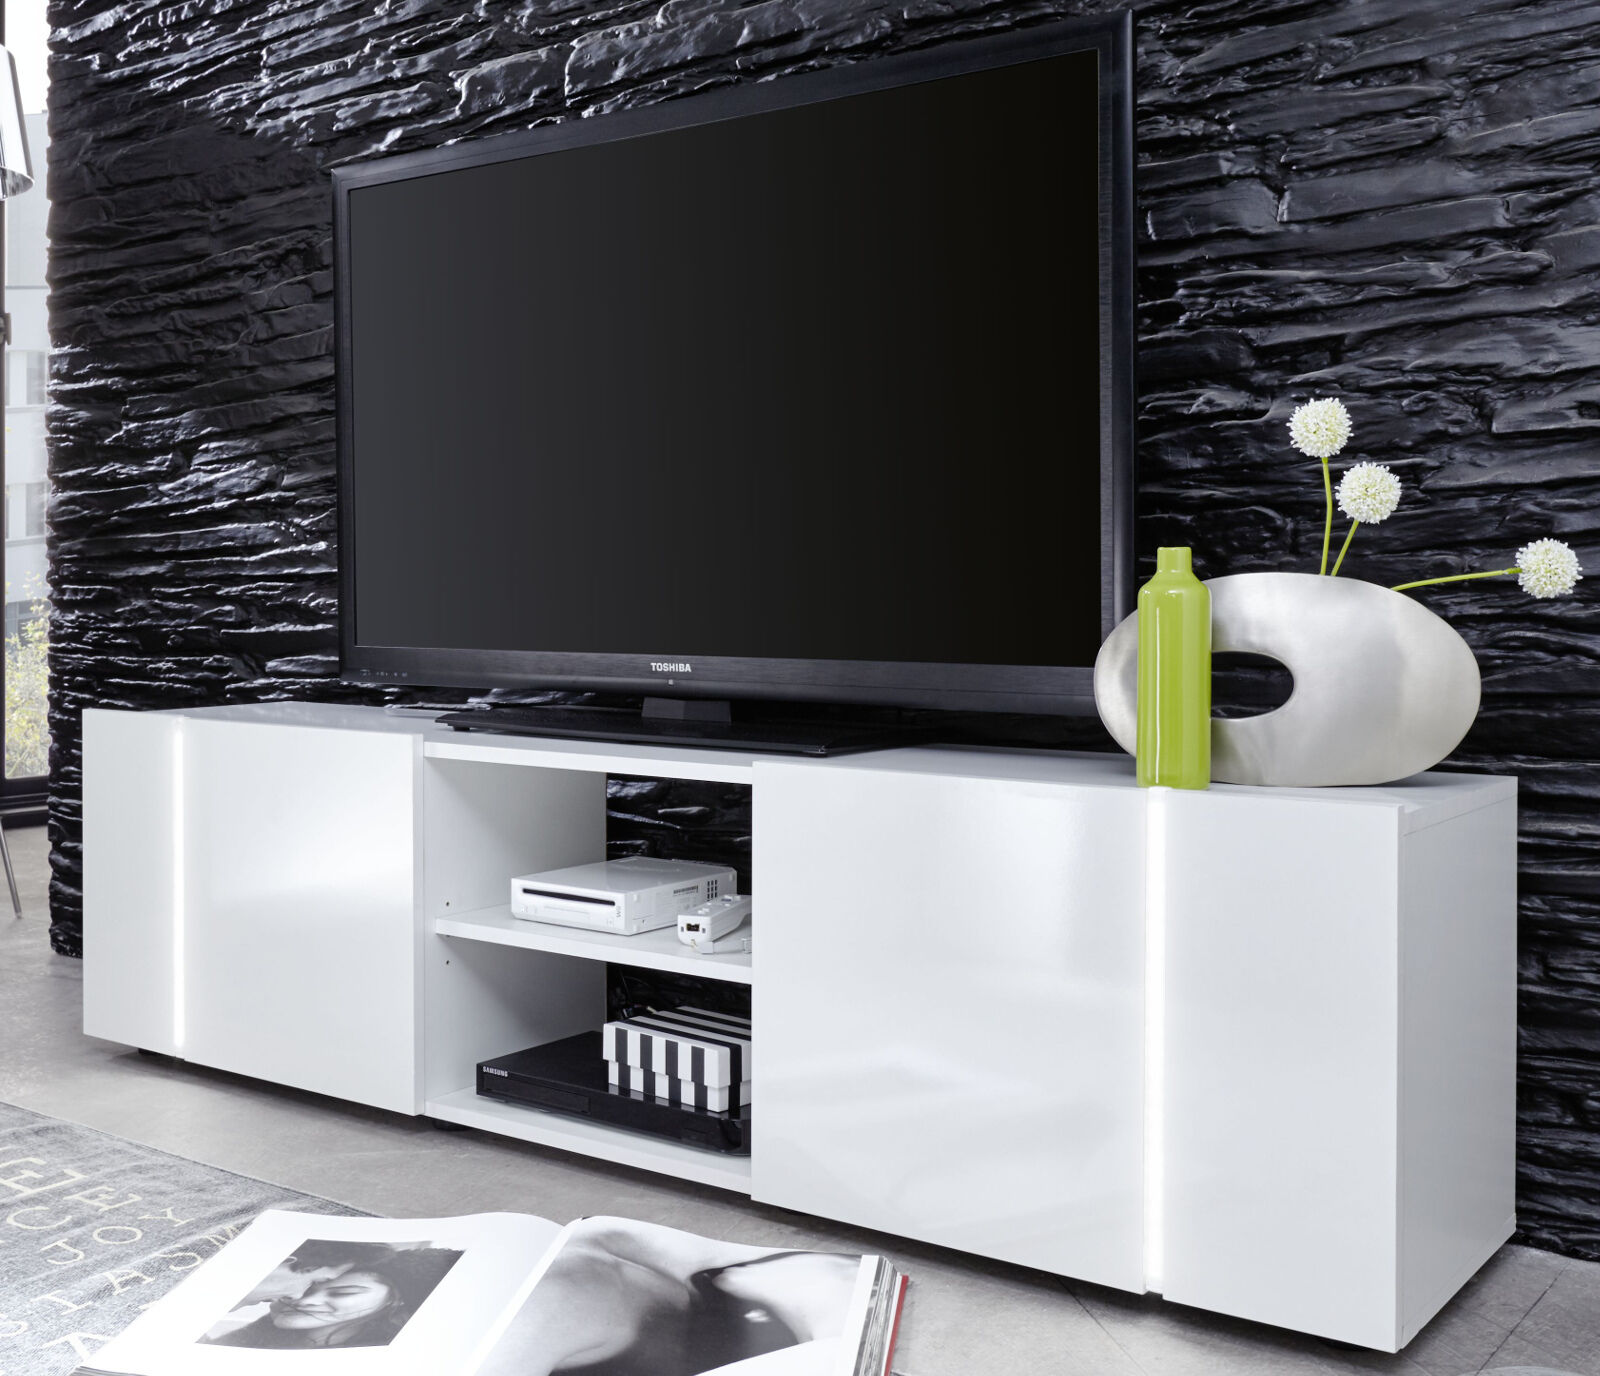 lowboard weiss gl nzend inspirierendes design f r wohnm bel. Black Bedroom Furniture Sets. Home Design Ideas